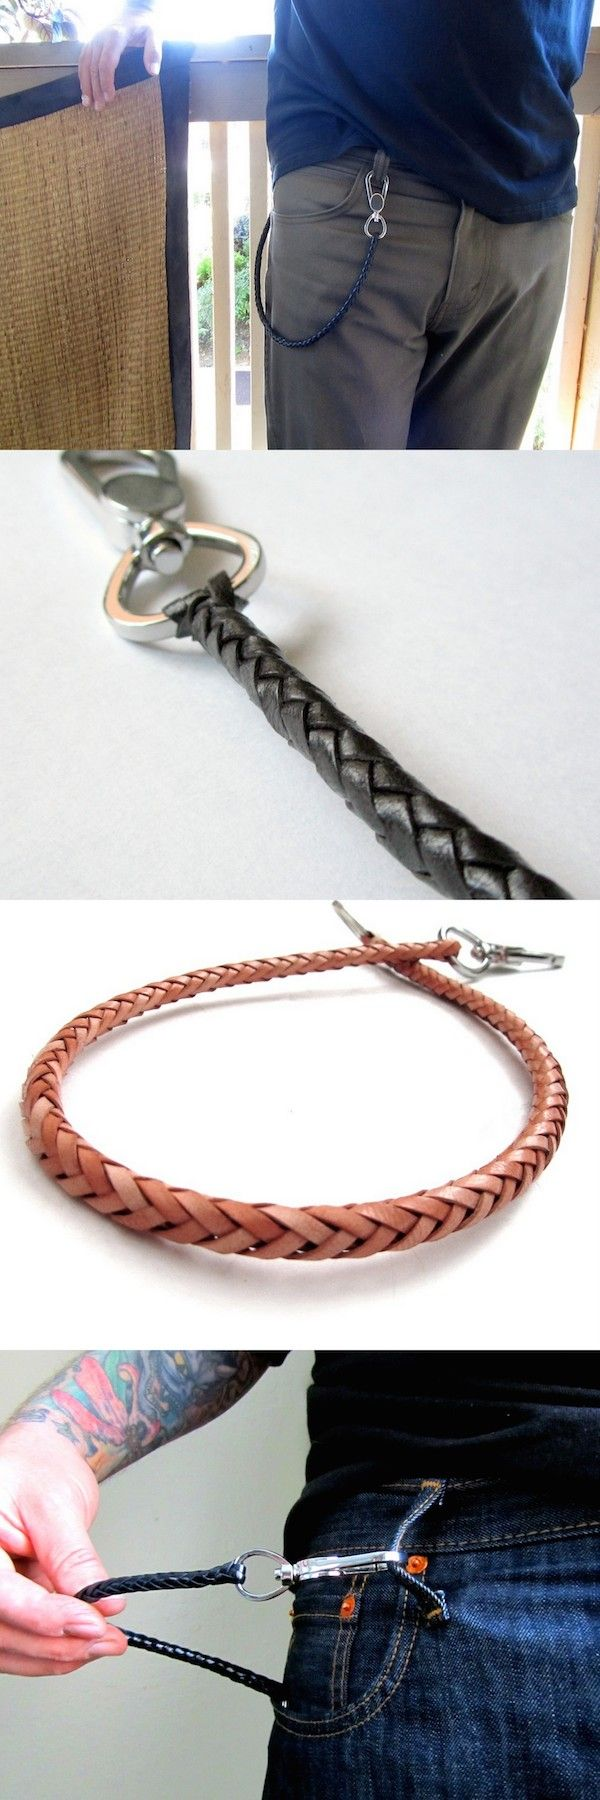 Best 25 wallet chain ideas on pinterest i clip wallet for How to make a paracord wallet chain